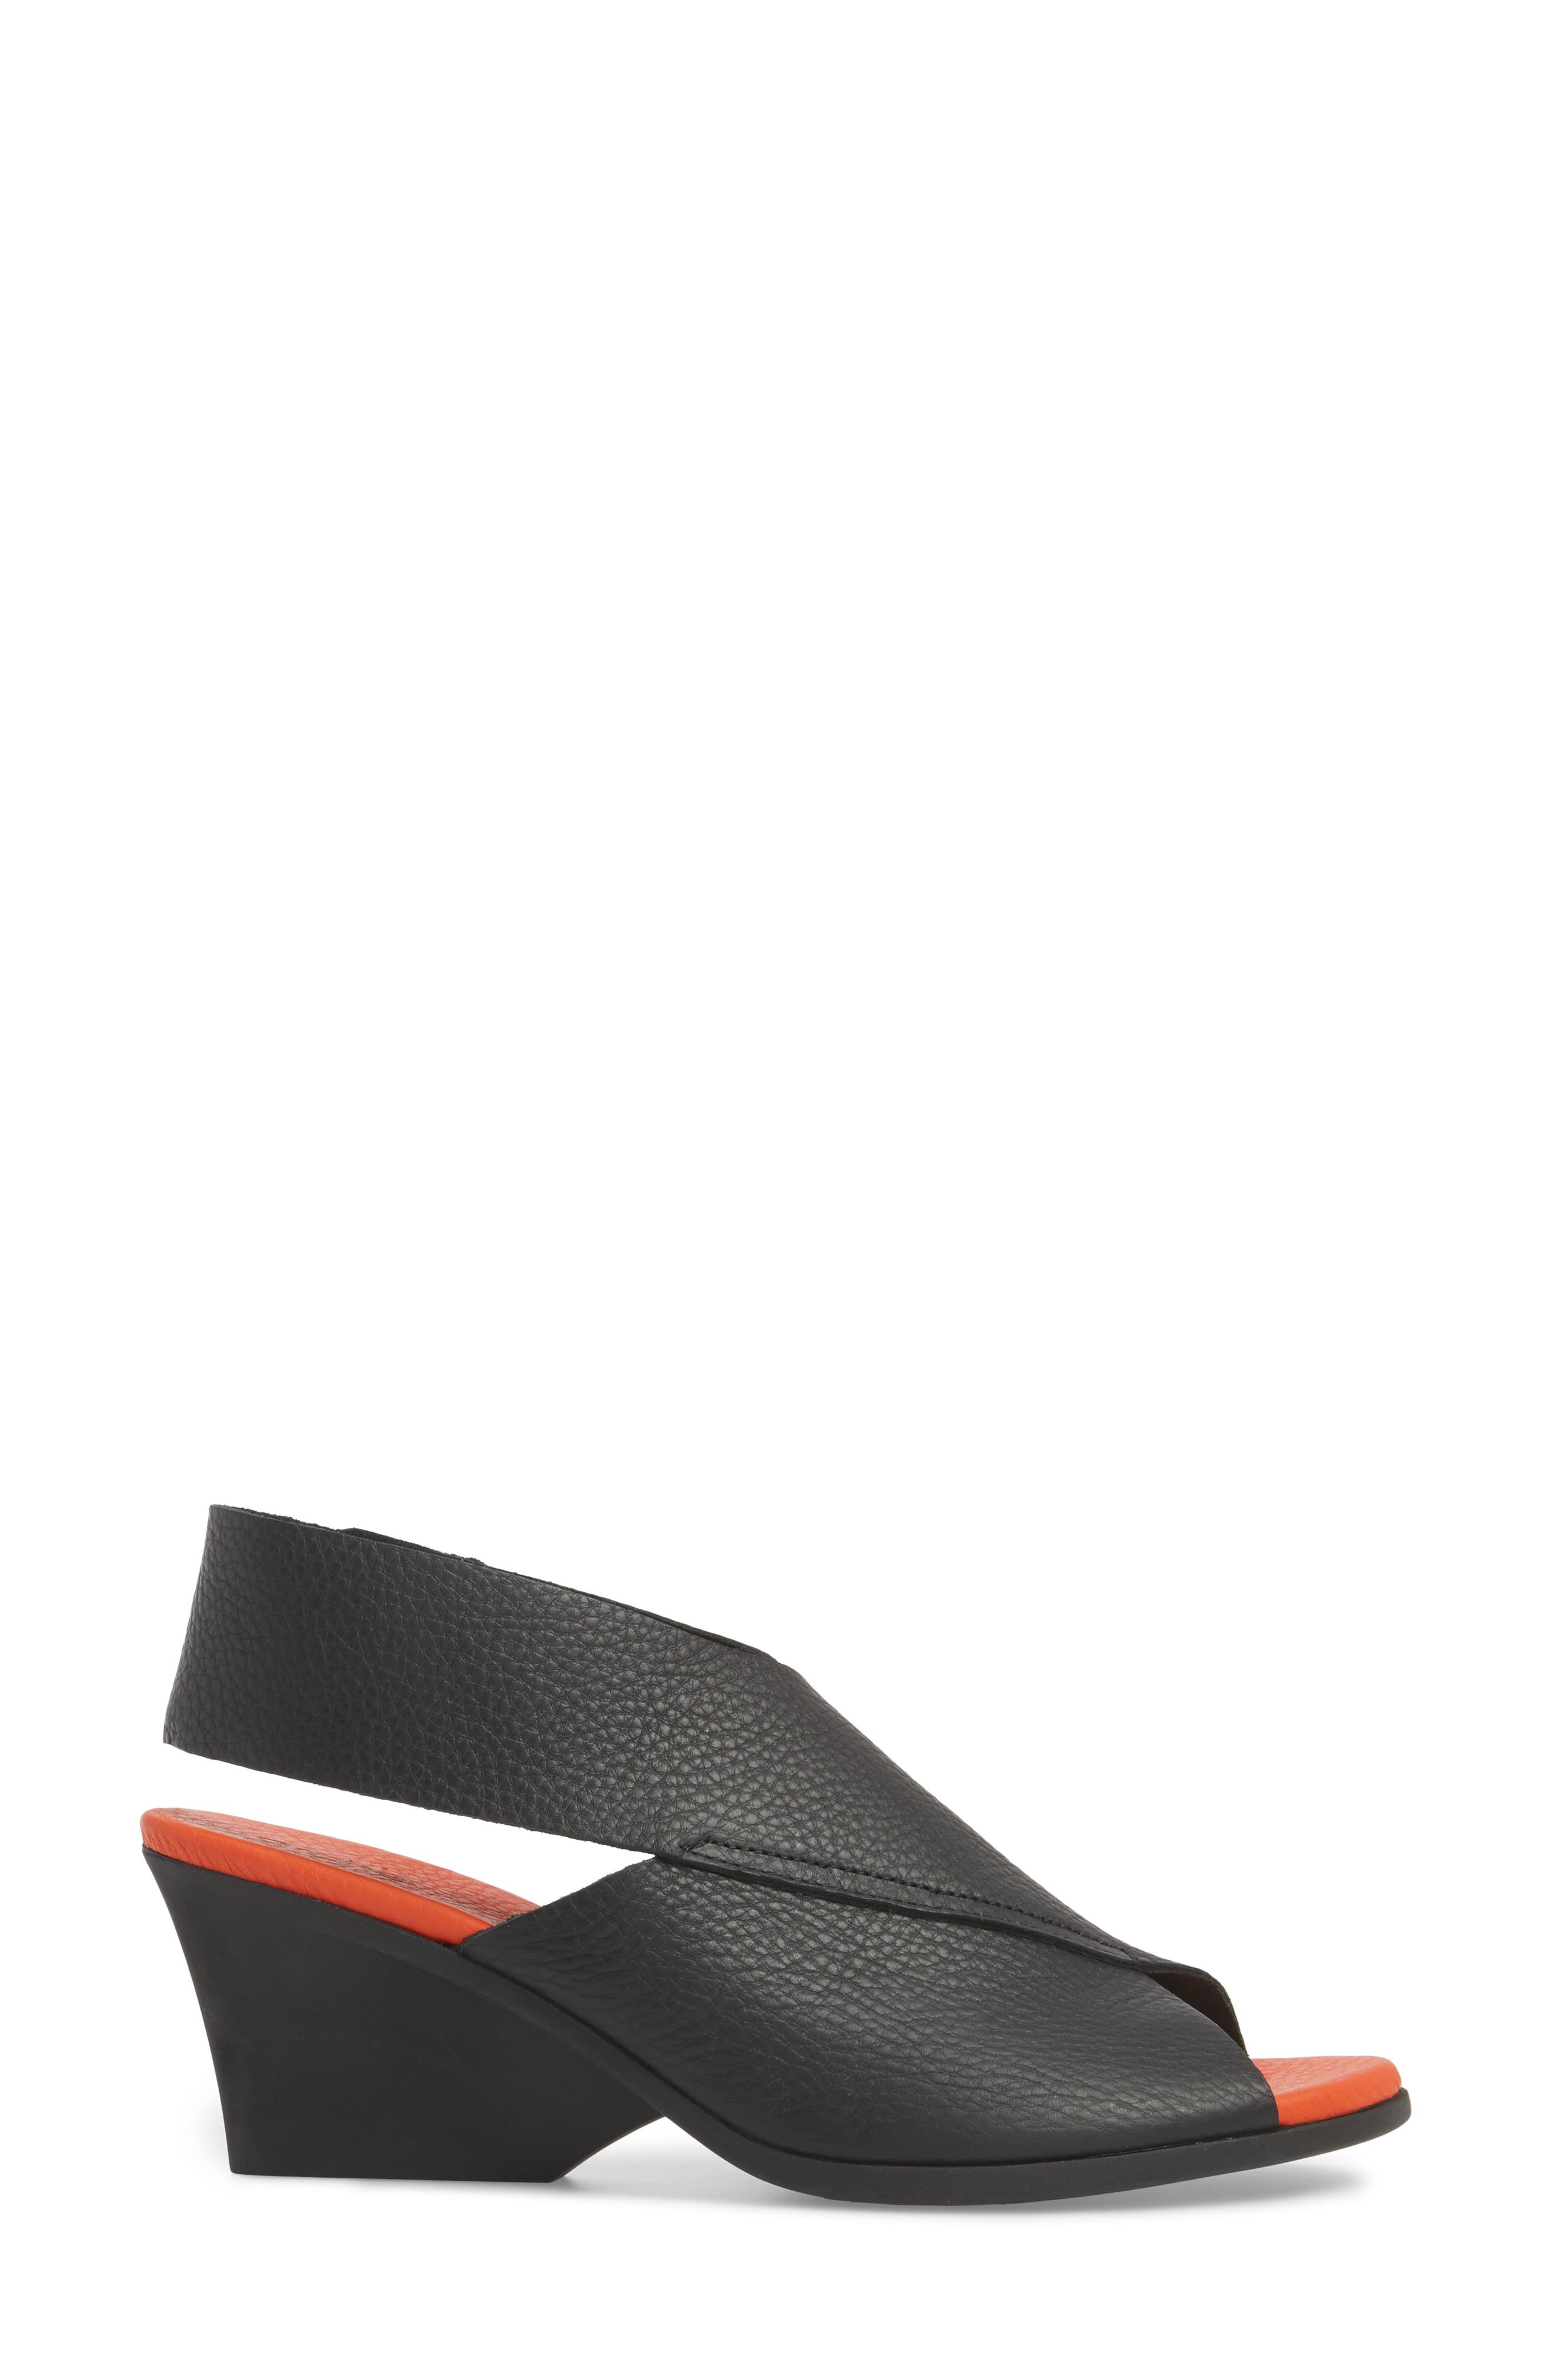 Ritual Wedge Sandal,                             Alternate thumbnail 3, color,                             Noir/ Paradis Leather